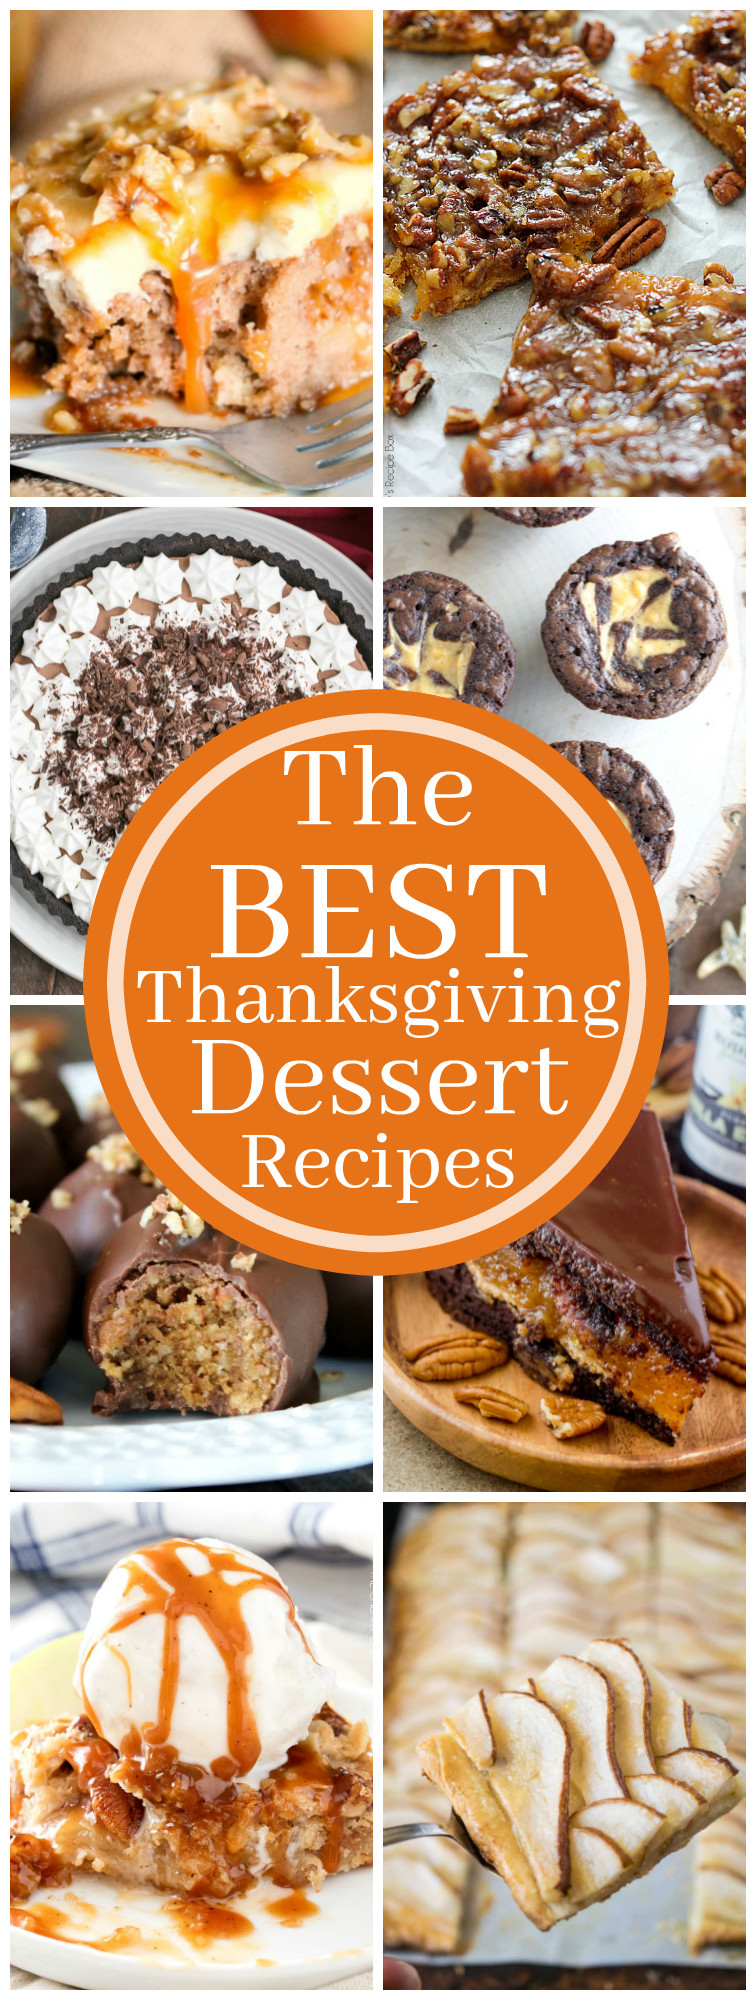 Desserts For Thanksgiving  The Best Thanksgiving Dessert Recipes The Chunky Chef